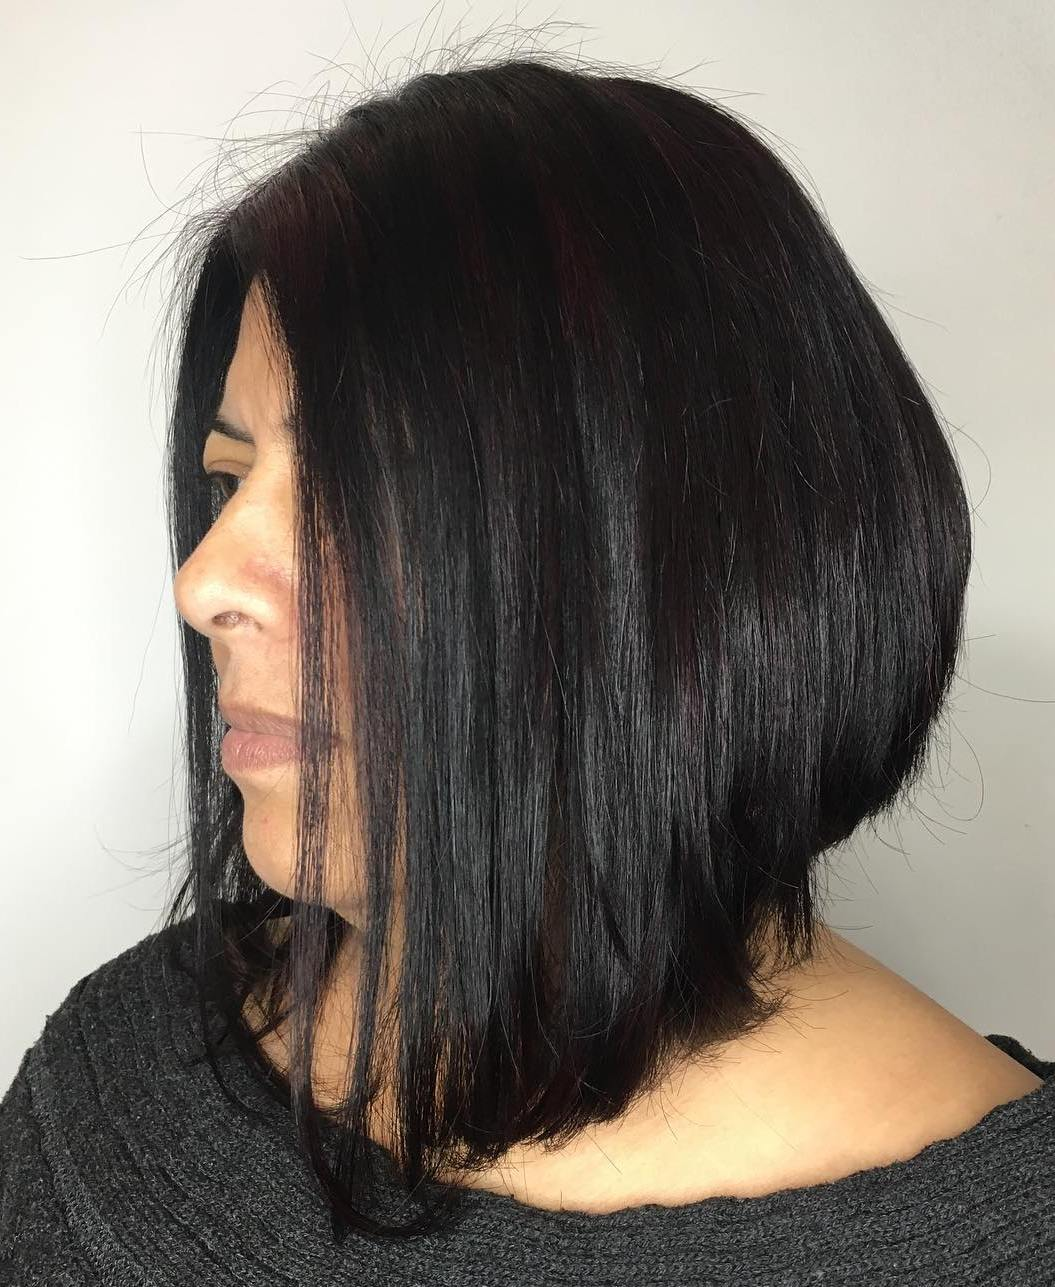 How To Soften A Blunt Haircut : soften, blunt, haircut, Variations, Shoulder, Length